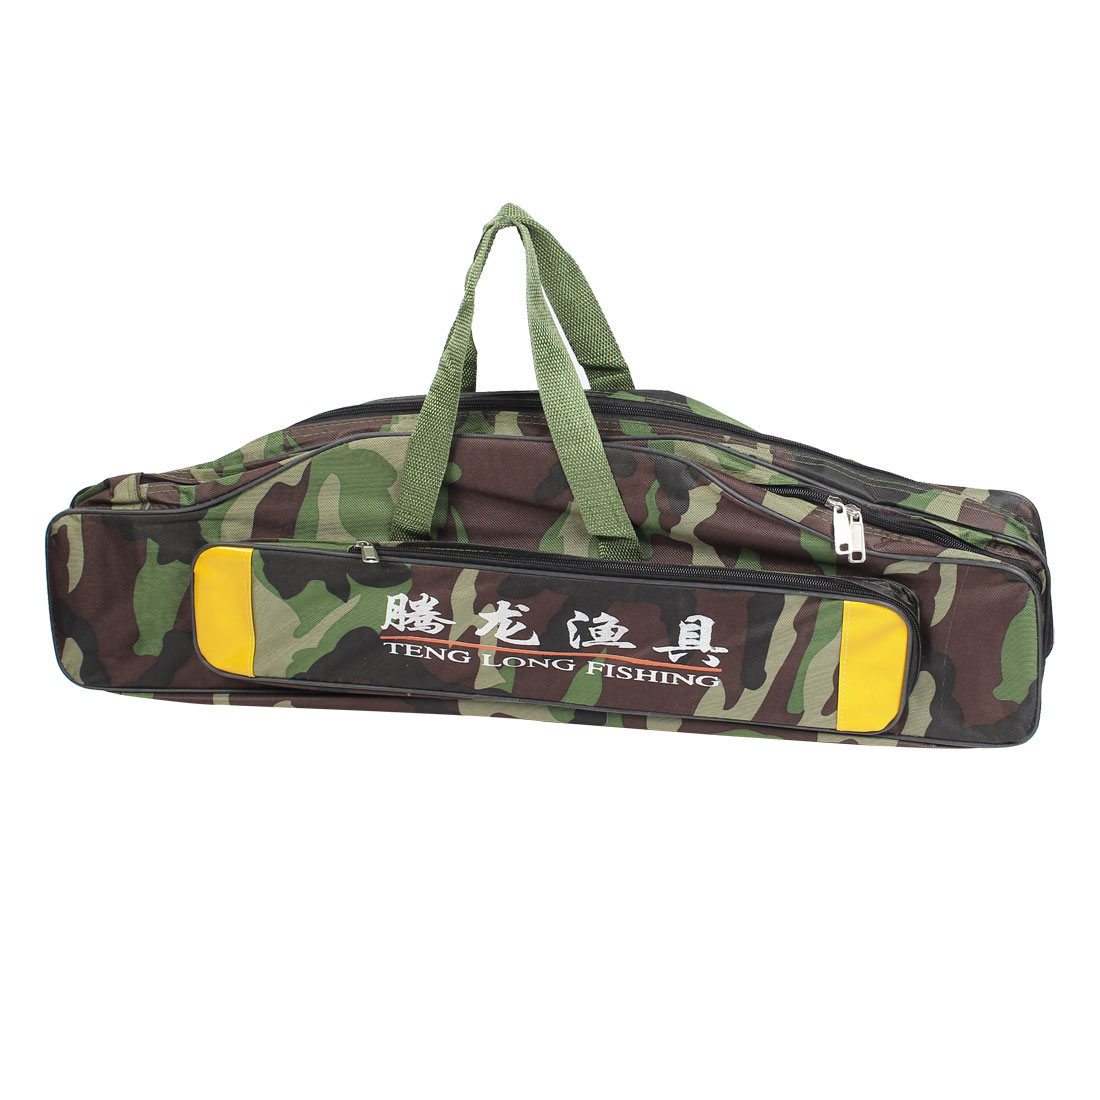 71cm Long 3 Compartments Zipped Camouflage Fishing Rod Fish Pole Carry Bag